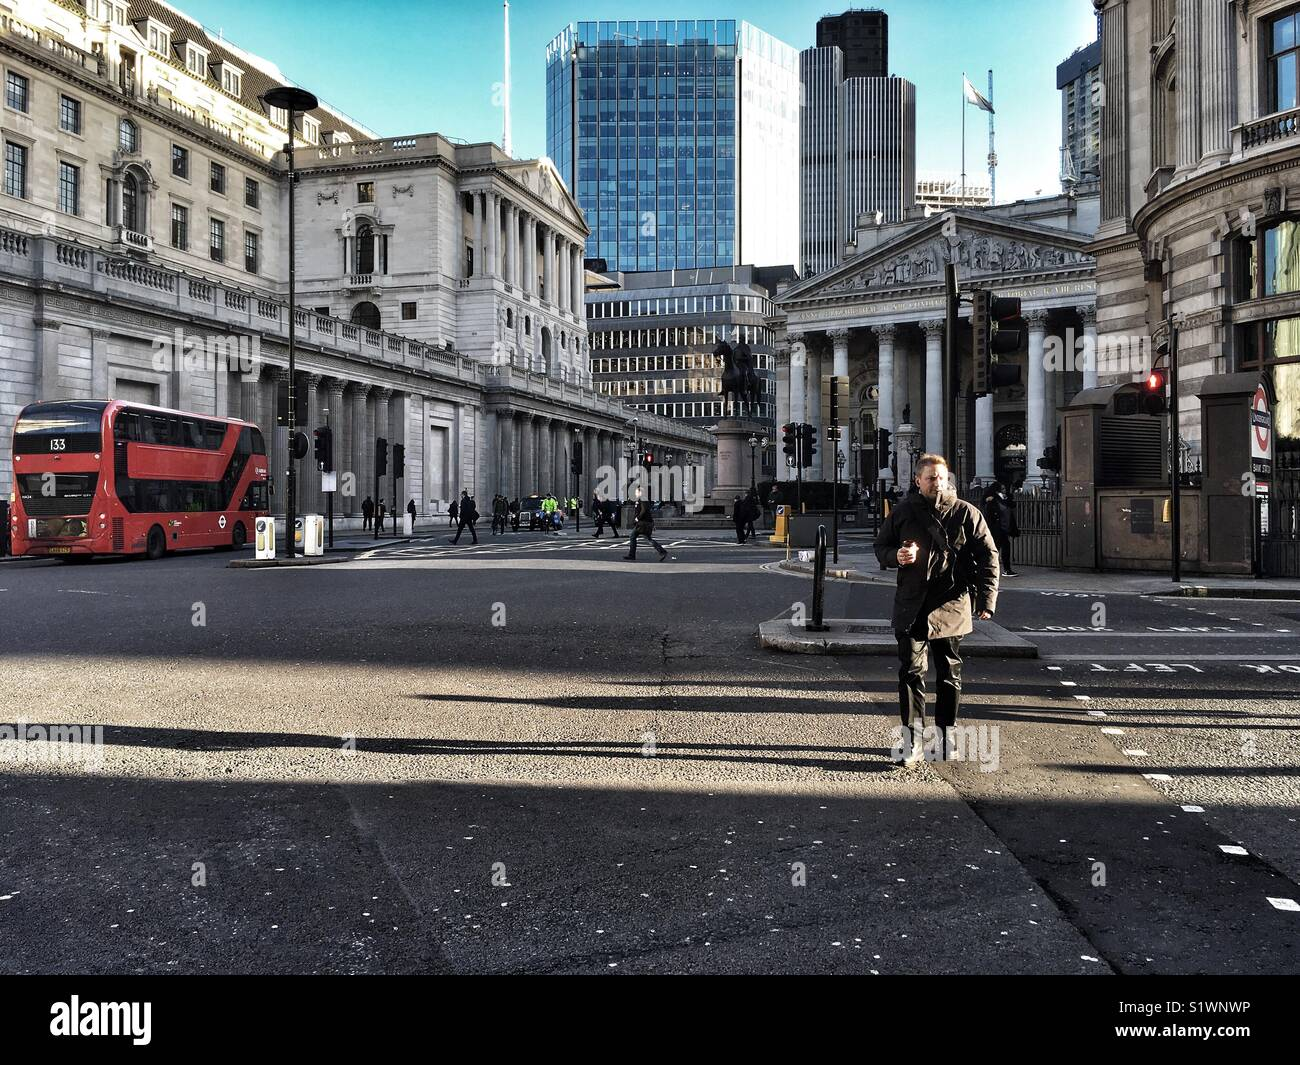 Traffic at Cornhill and Bank Junction in the City of London, England on January 16 2018 - Stock Image